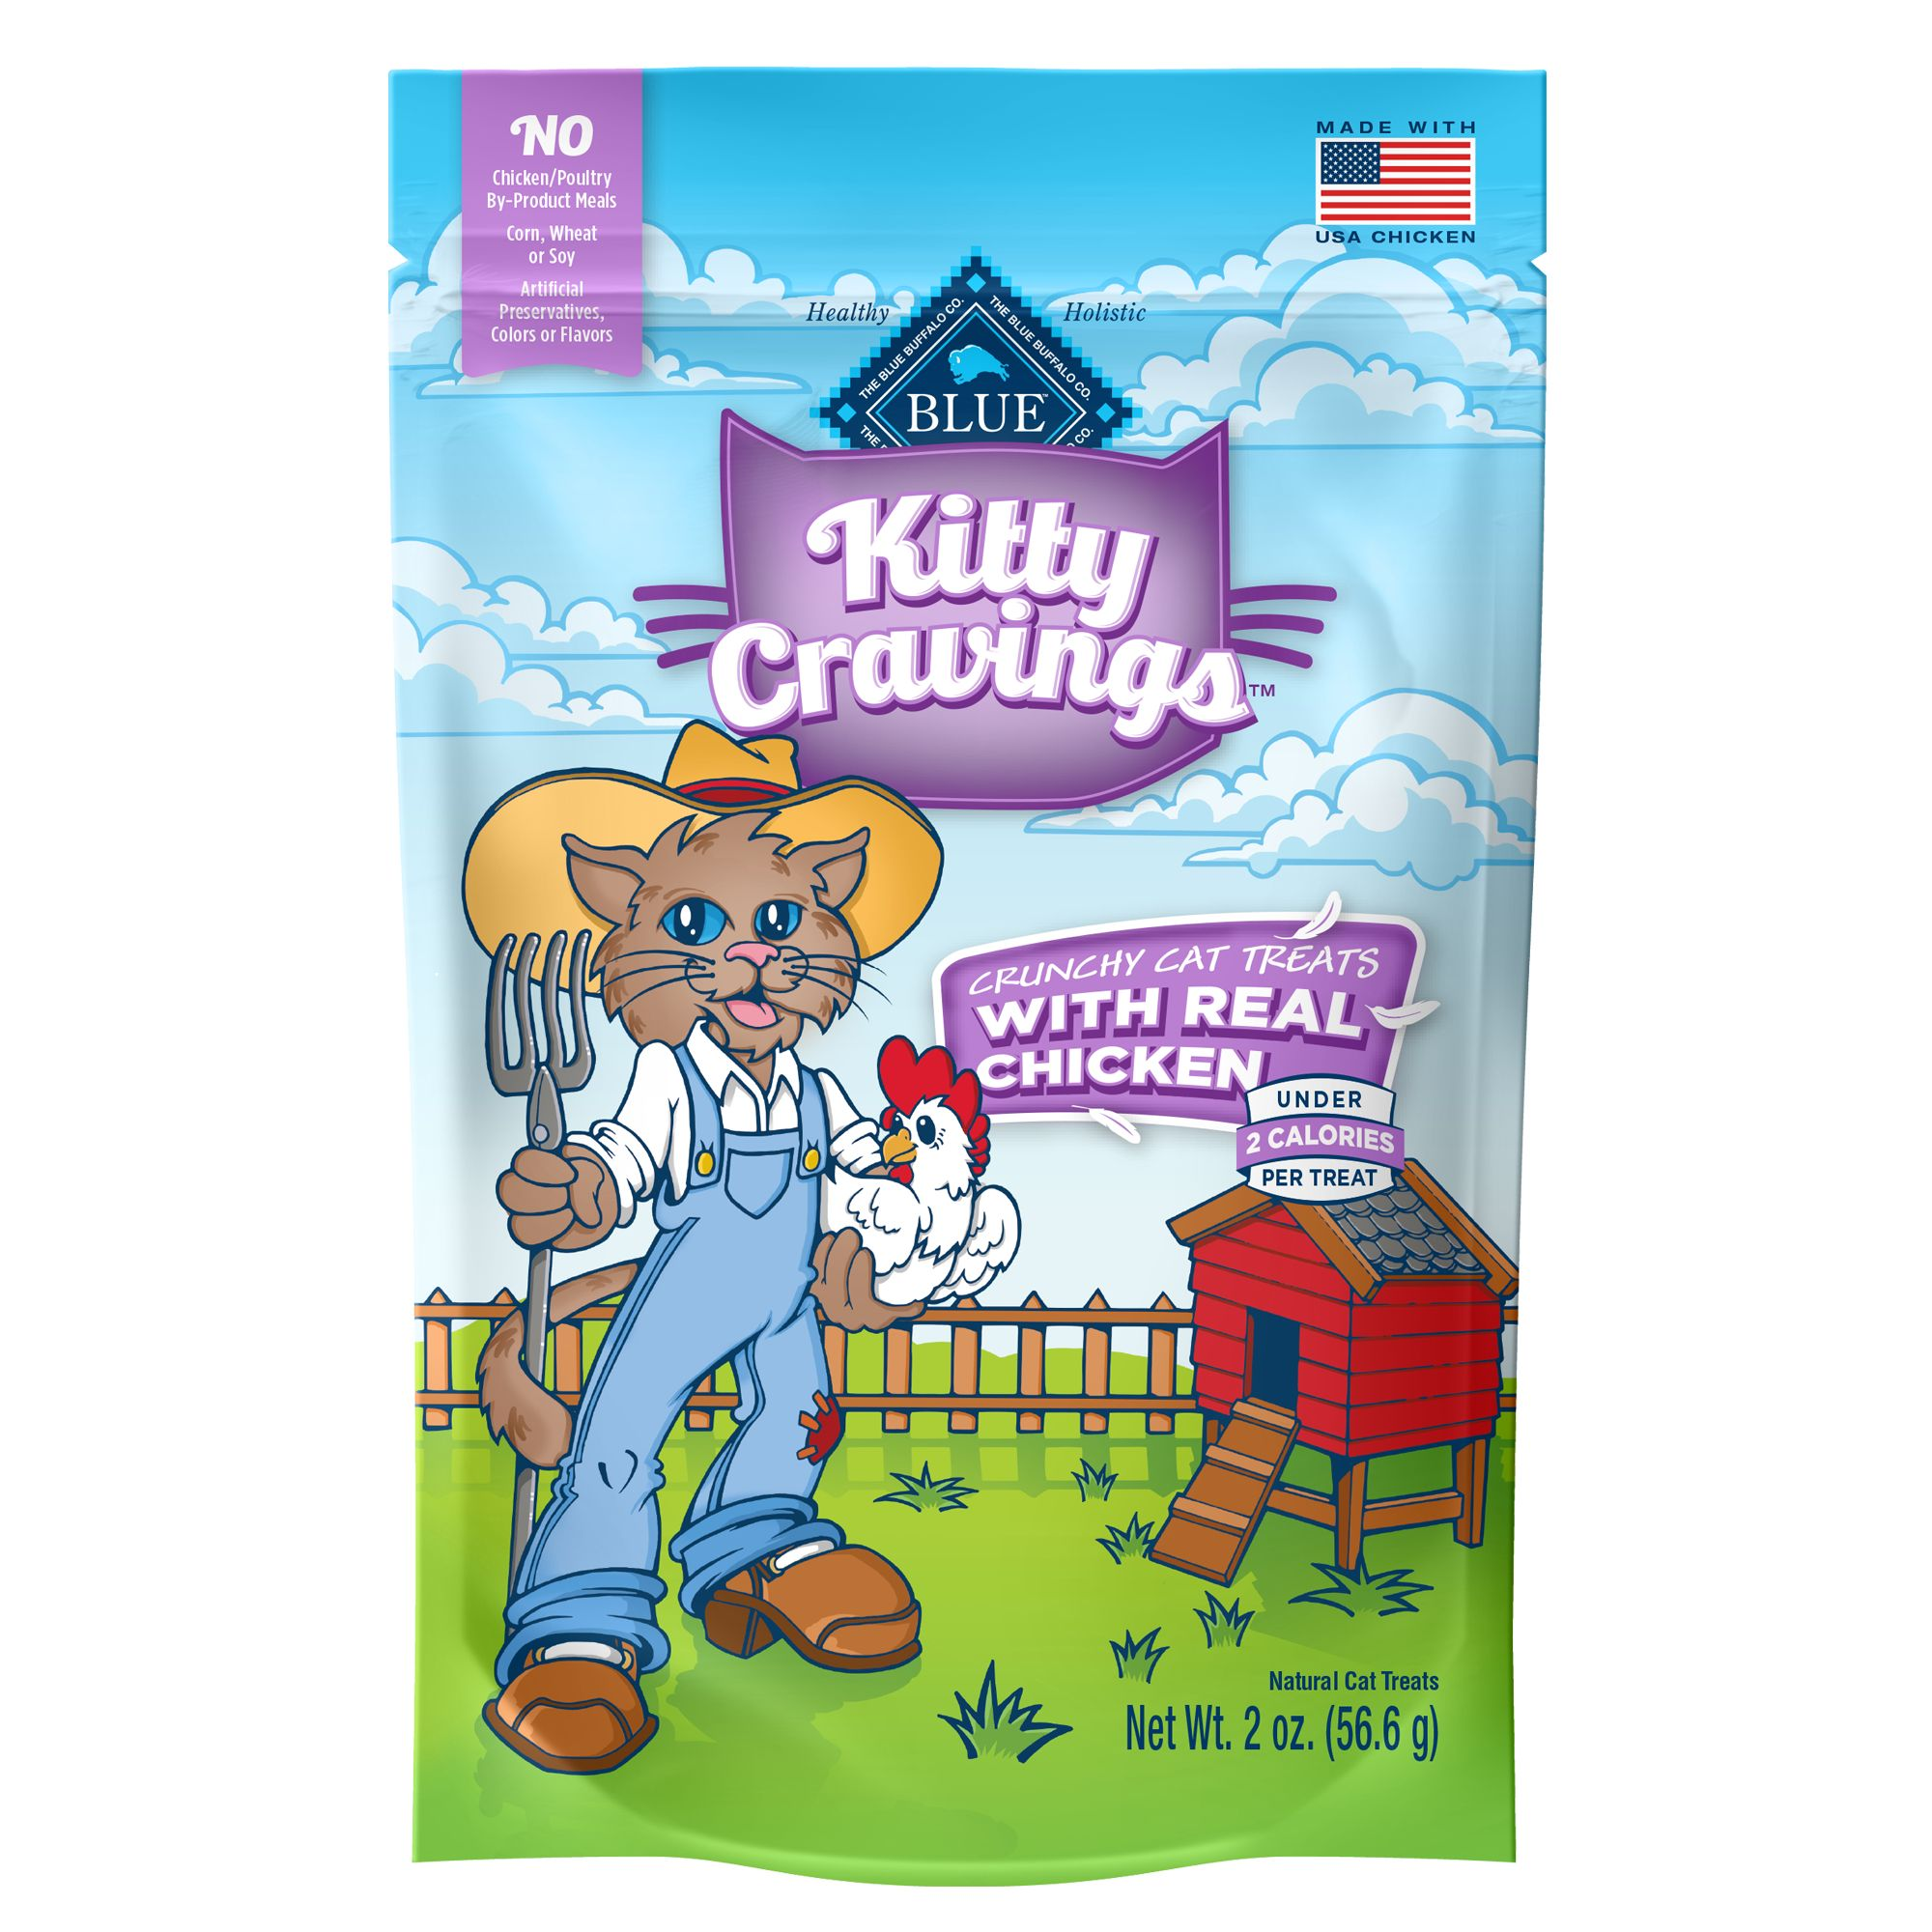 Blue Kitty Cravings Cat Treat - Natural, Chicken size: 2 Oz